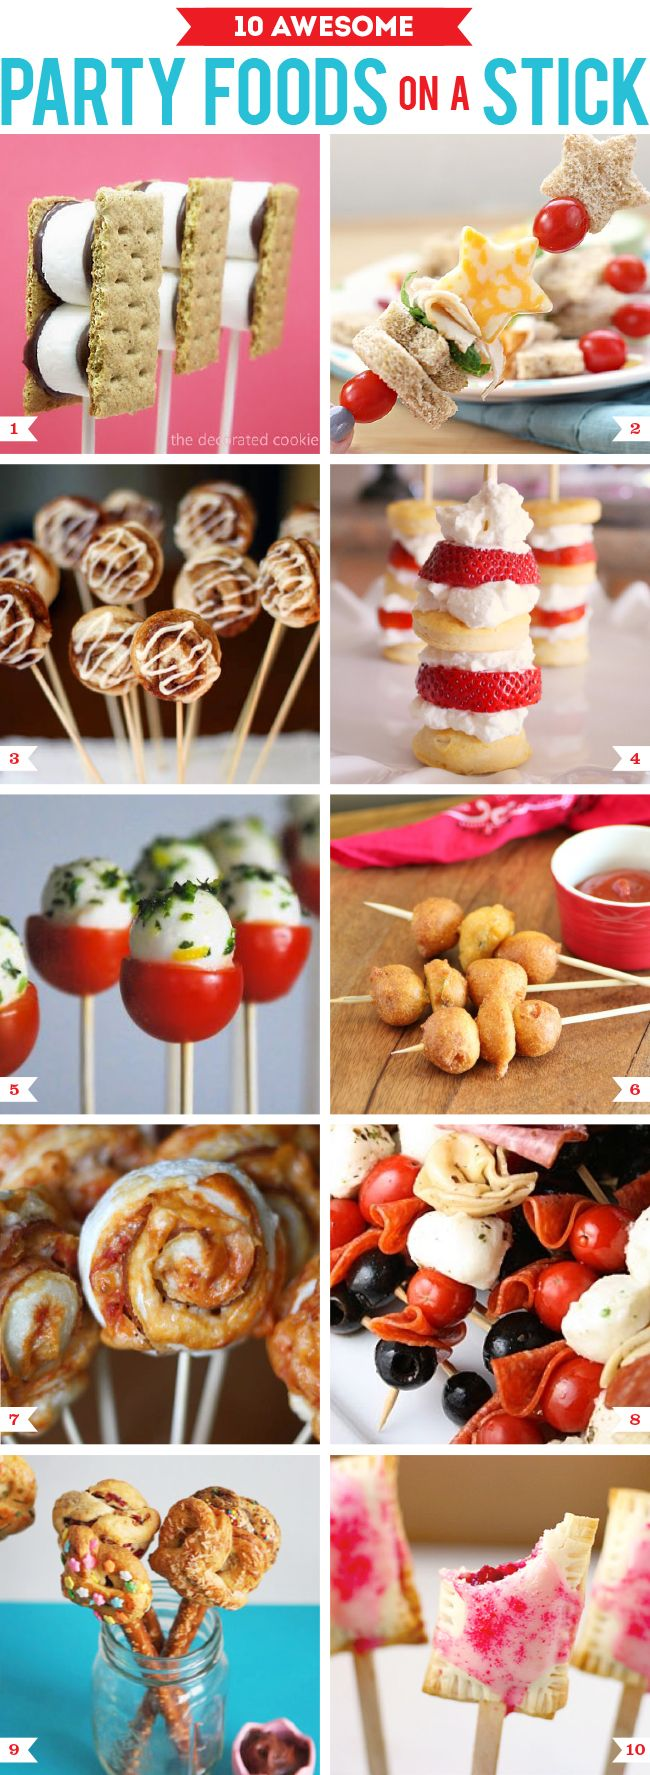 10 awesome party foods on a stick